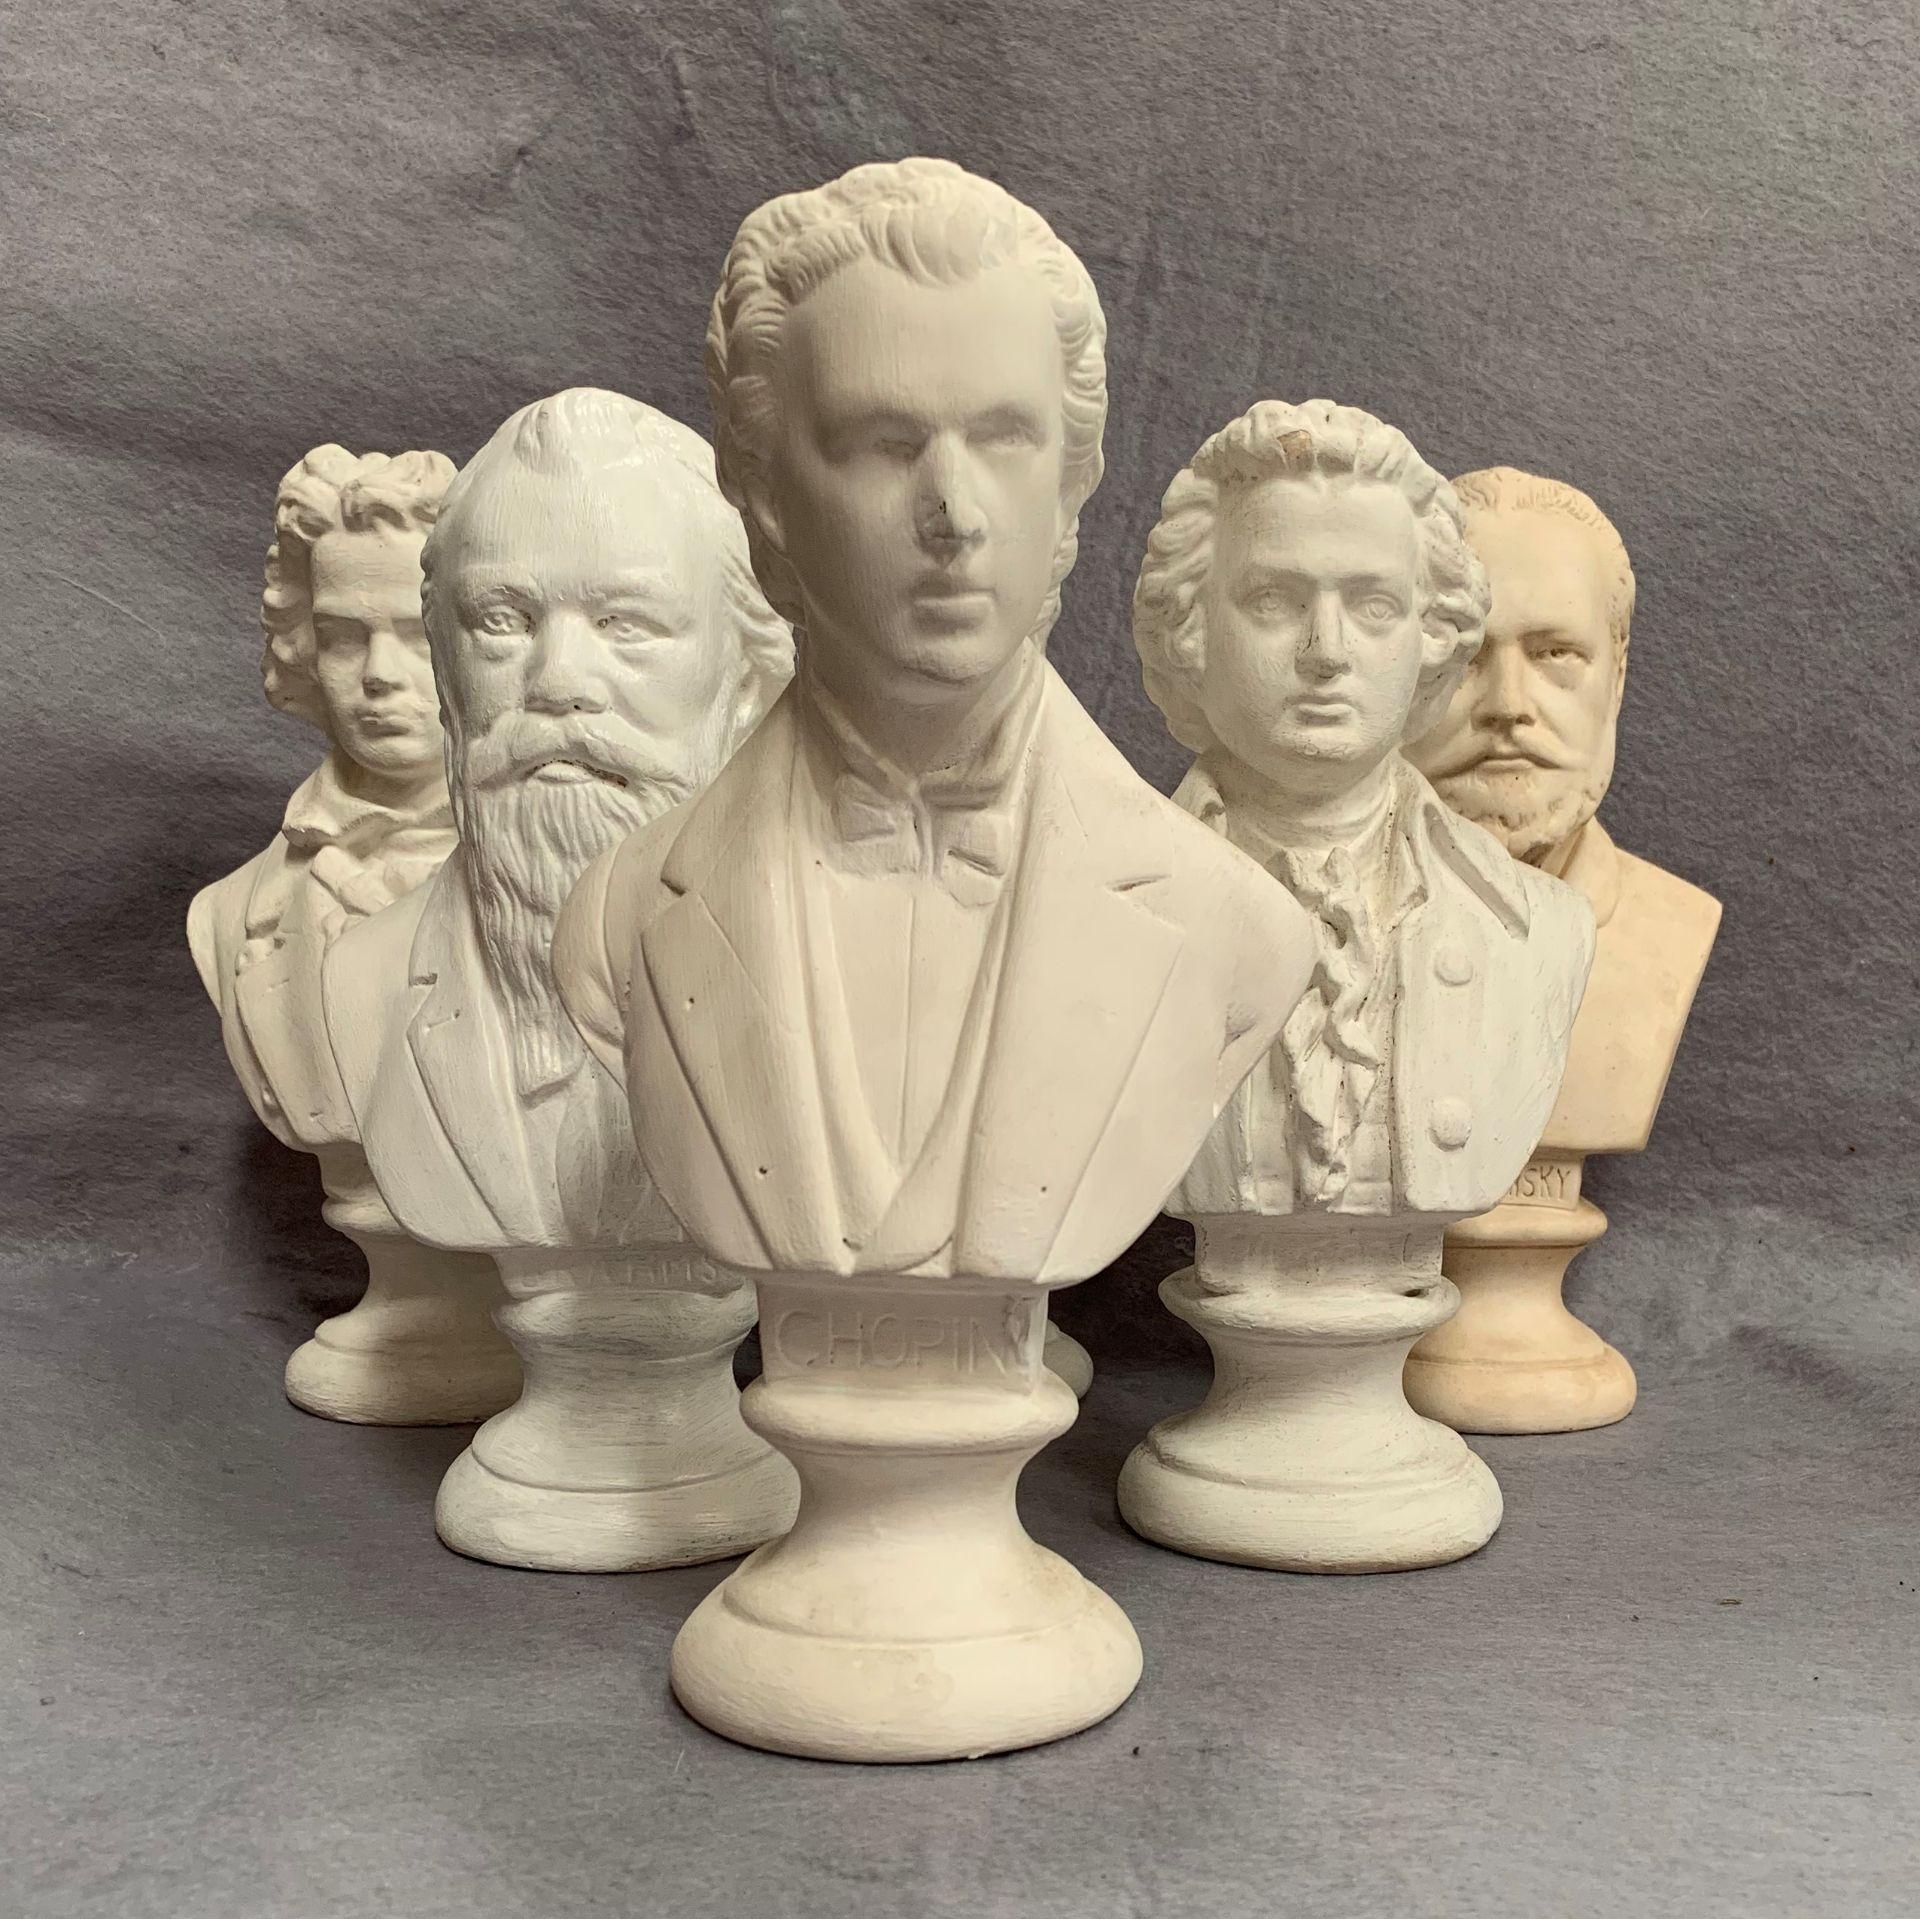 Lot 33 - Six plaster busts of composers including Beethoven, Chopin,